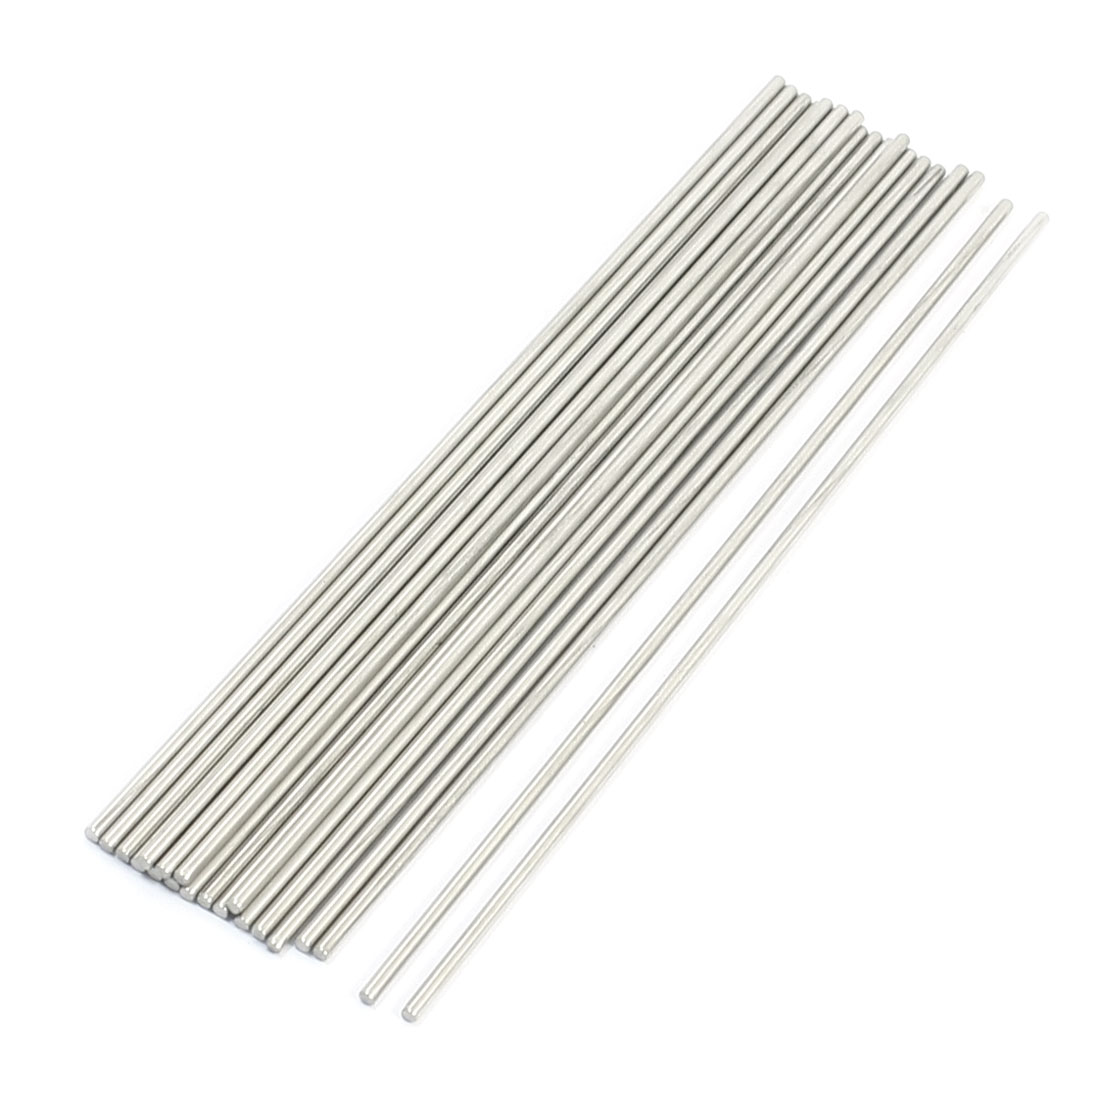 Unique Bargains 20PCS RC Helicopter Car Toy Repairing Parts Round Rod 180mm x 2.5mm